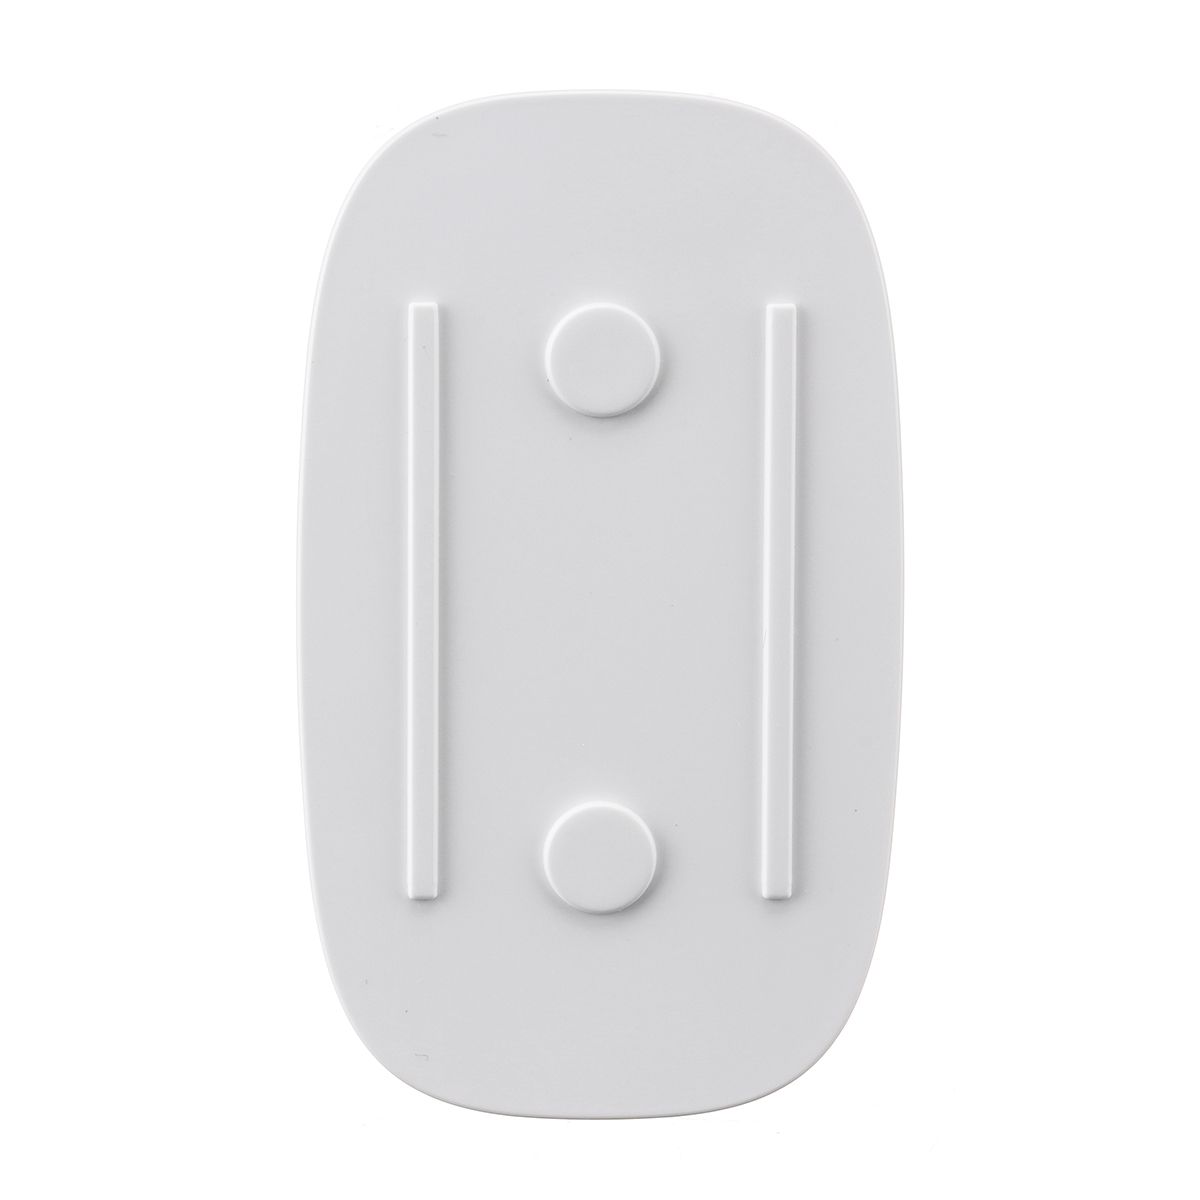 Wireless Chime Door Bell Waterproof 150M Range Doorbell 38 Ringtones Music Doorbell US Plug